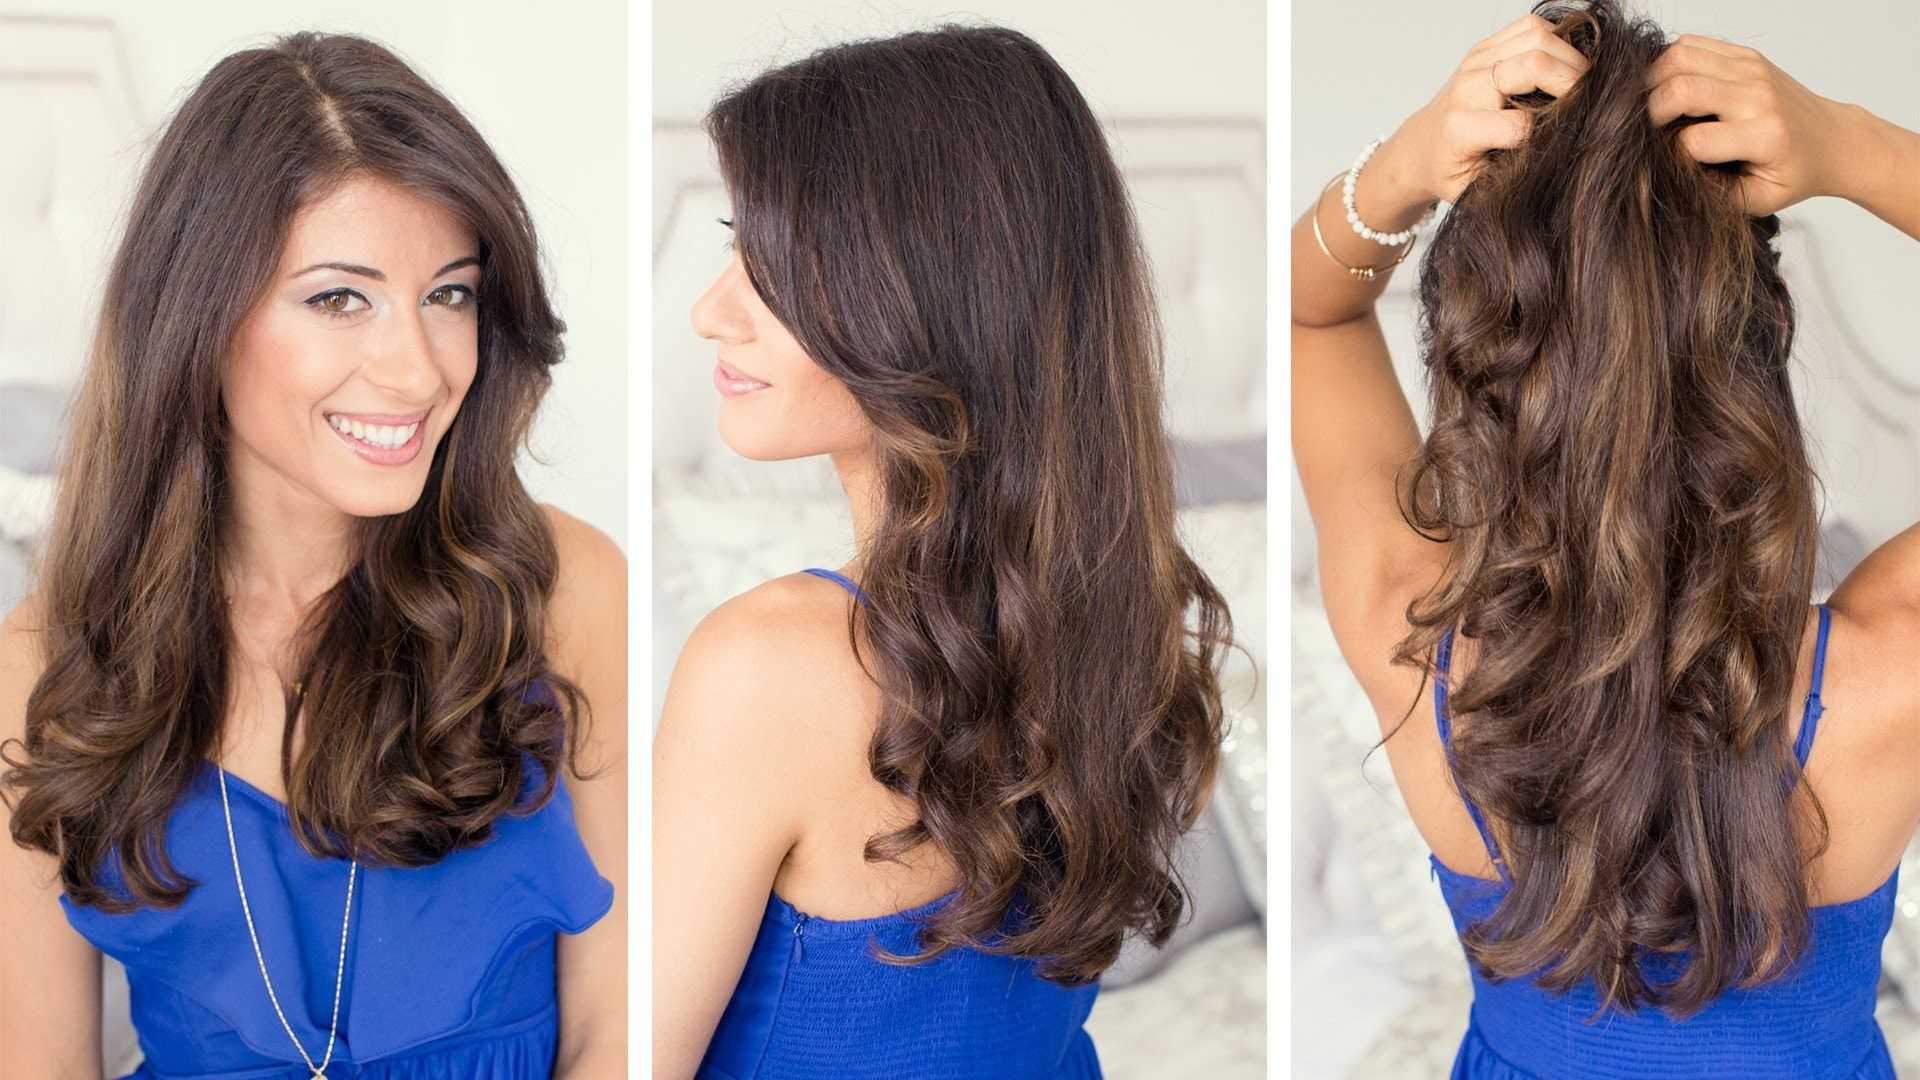 How To: Blow Dry Wavy | Hair & Beauty | Pinterest | Blow dry, Hair ...